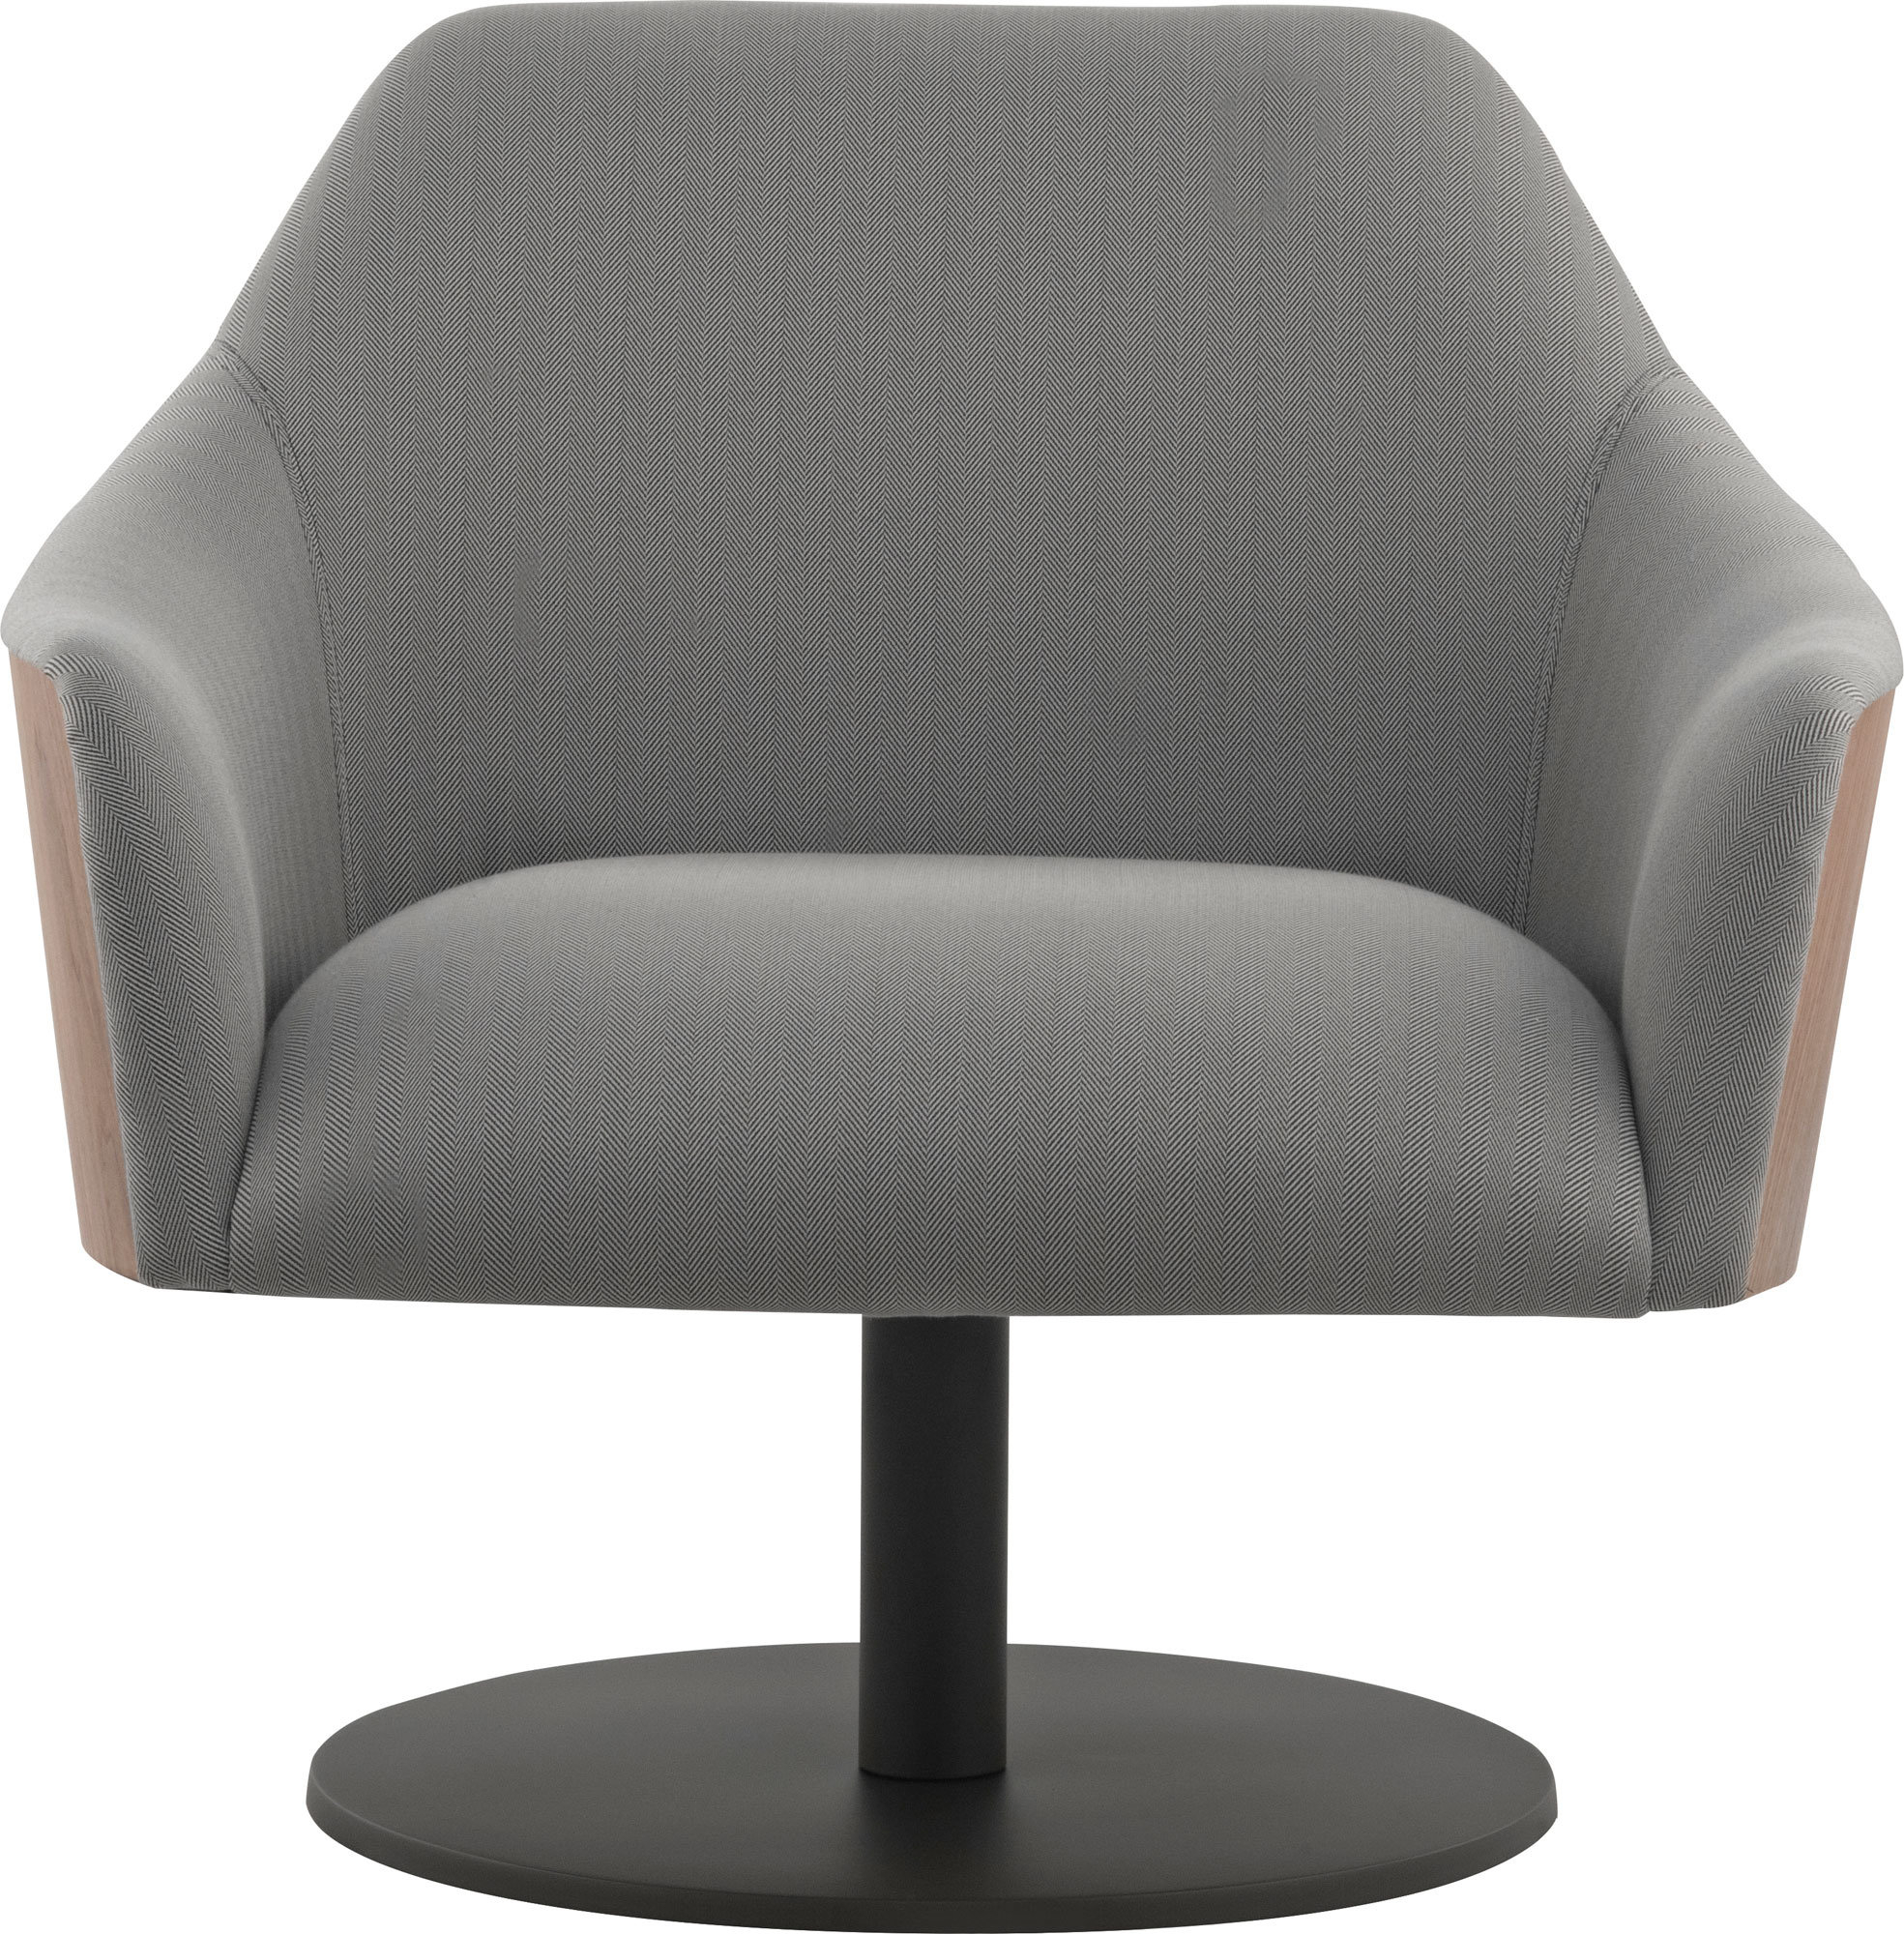 Henry Swivel Armchair | Allmodern Pertaining To Loft Black Swivel Accent Chairs (View 19 of 25)